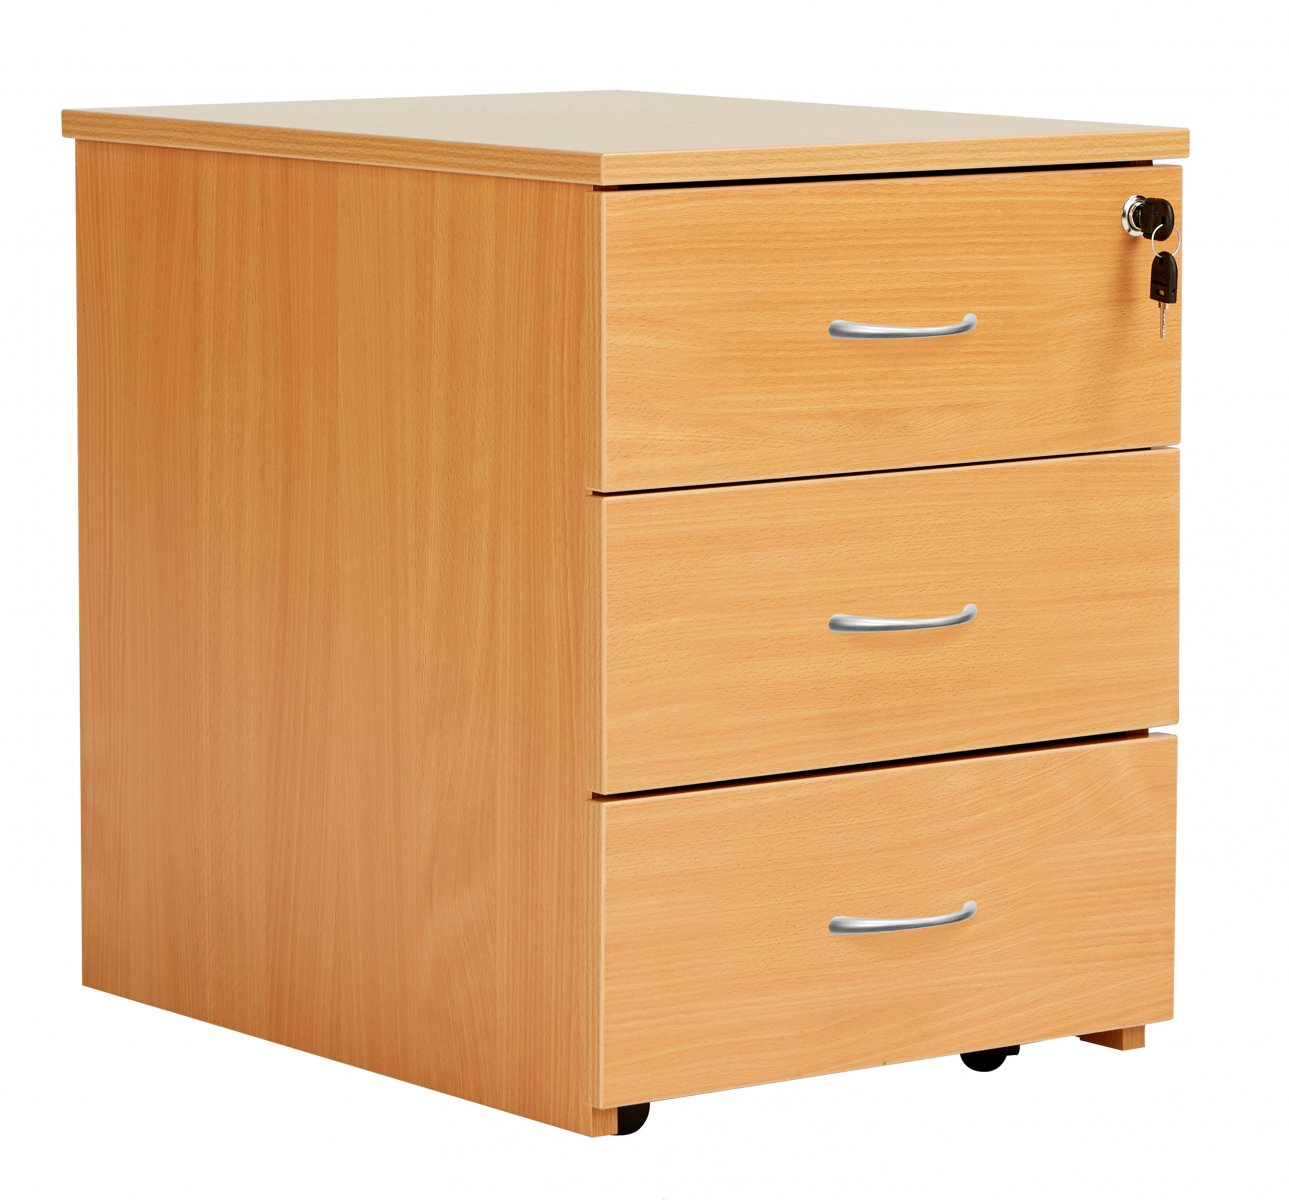 Fraction Plus 3 Drawer Low Mobile Pedestal - Beech